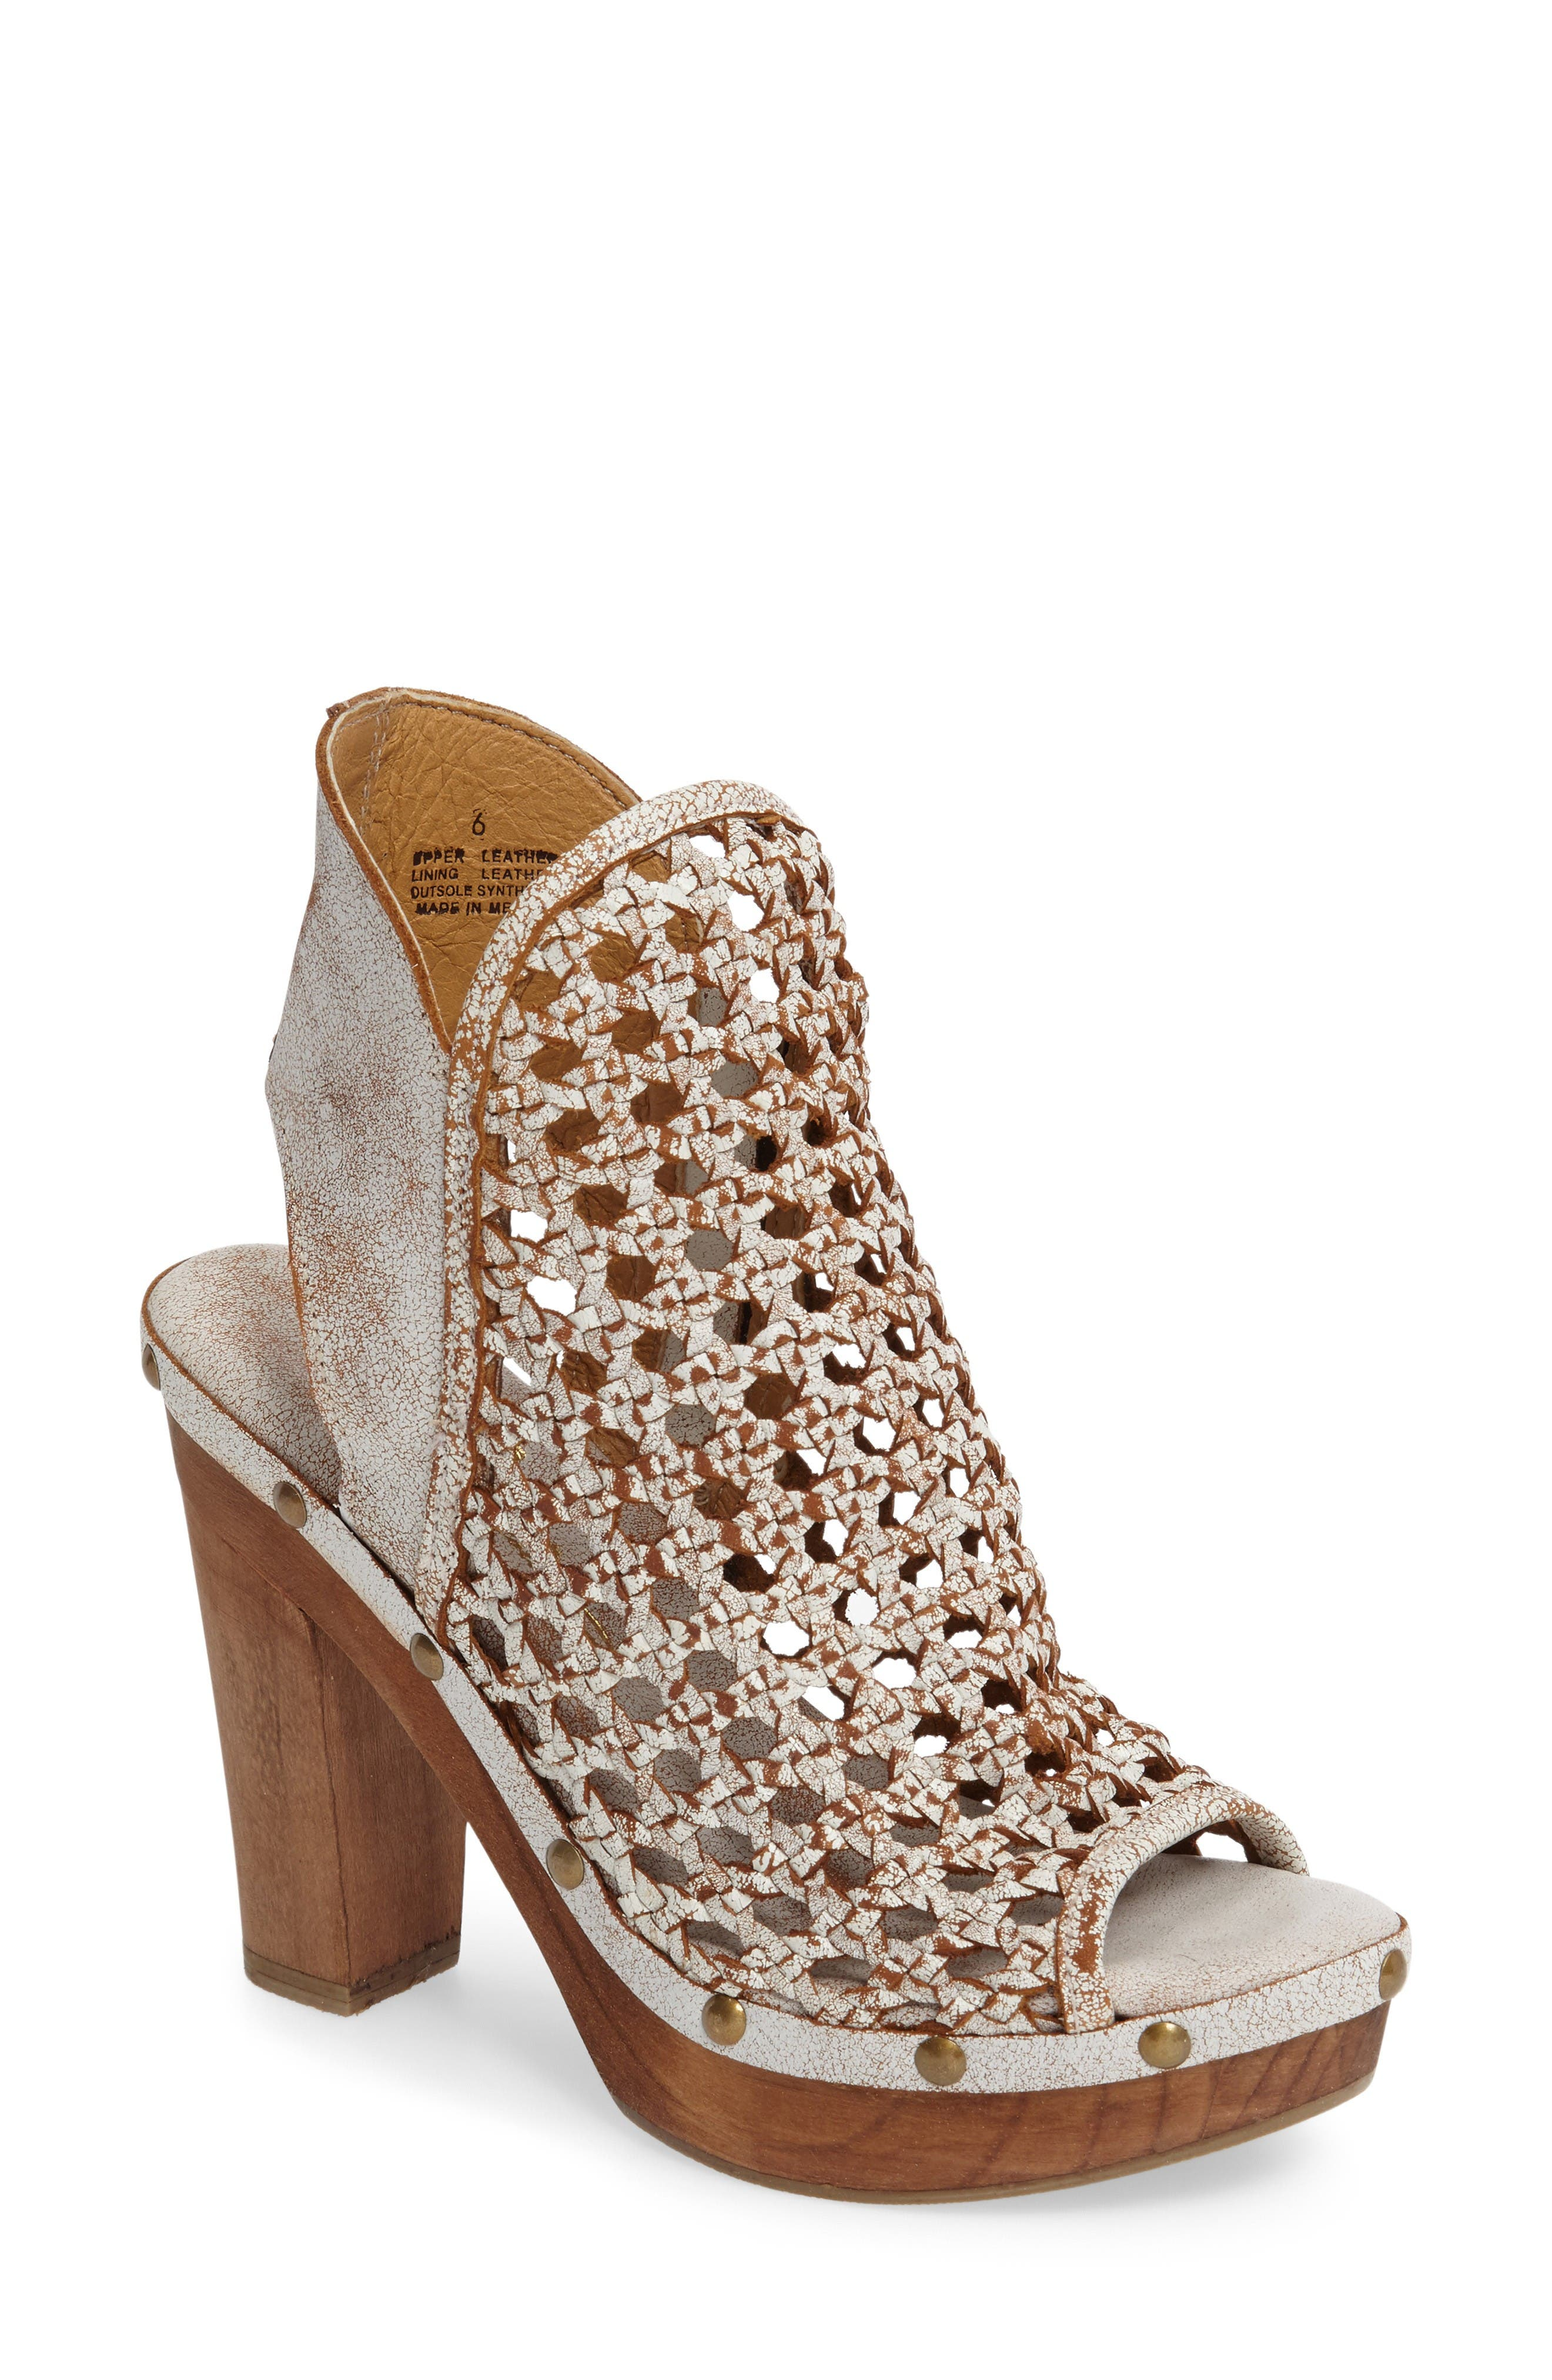 Alternate Image 1 Selected - Sbicca Rayna Sandal (Women)